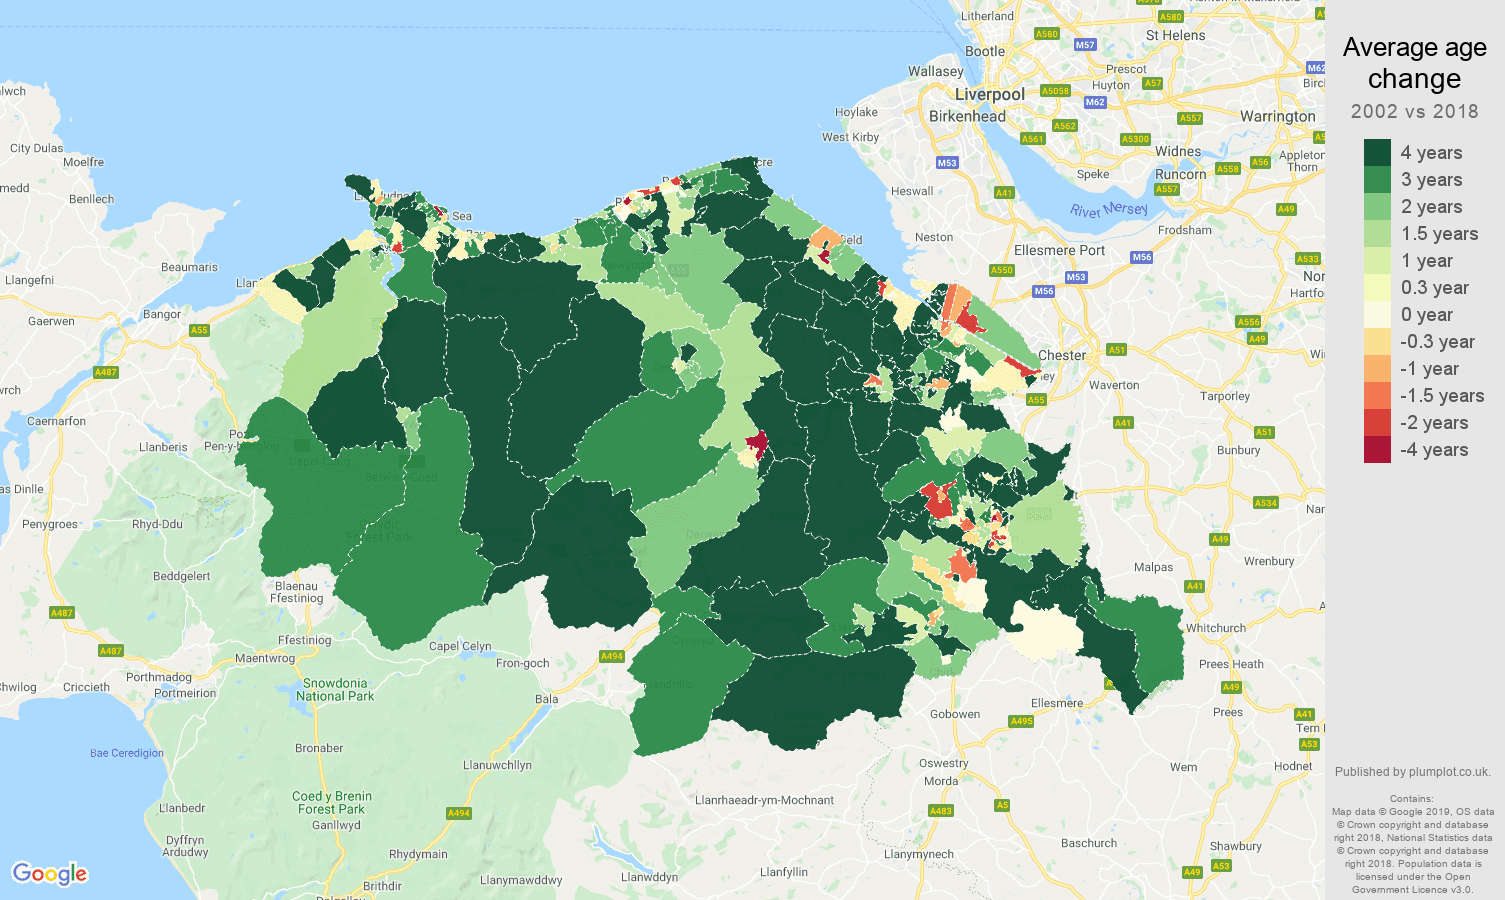 Clwyd average age change map